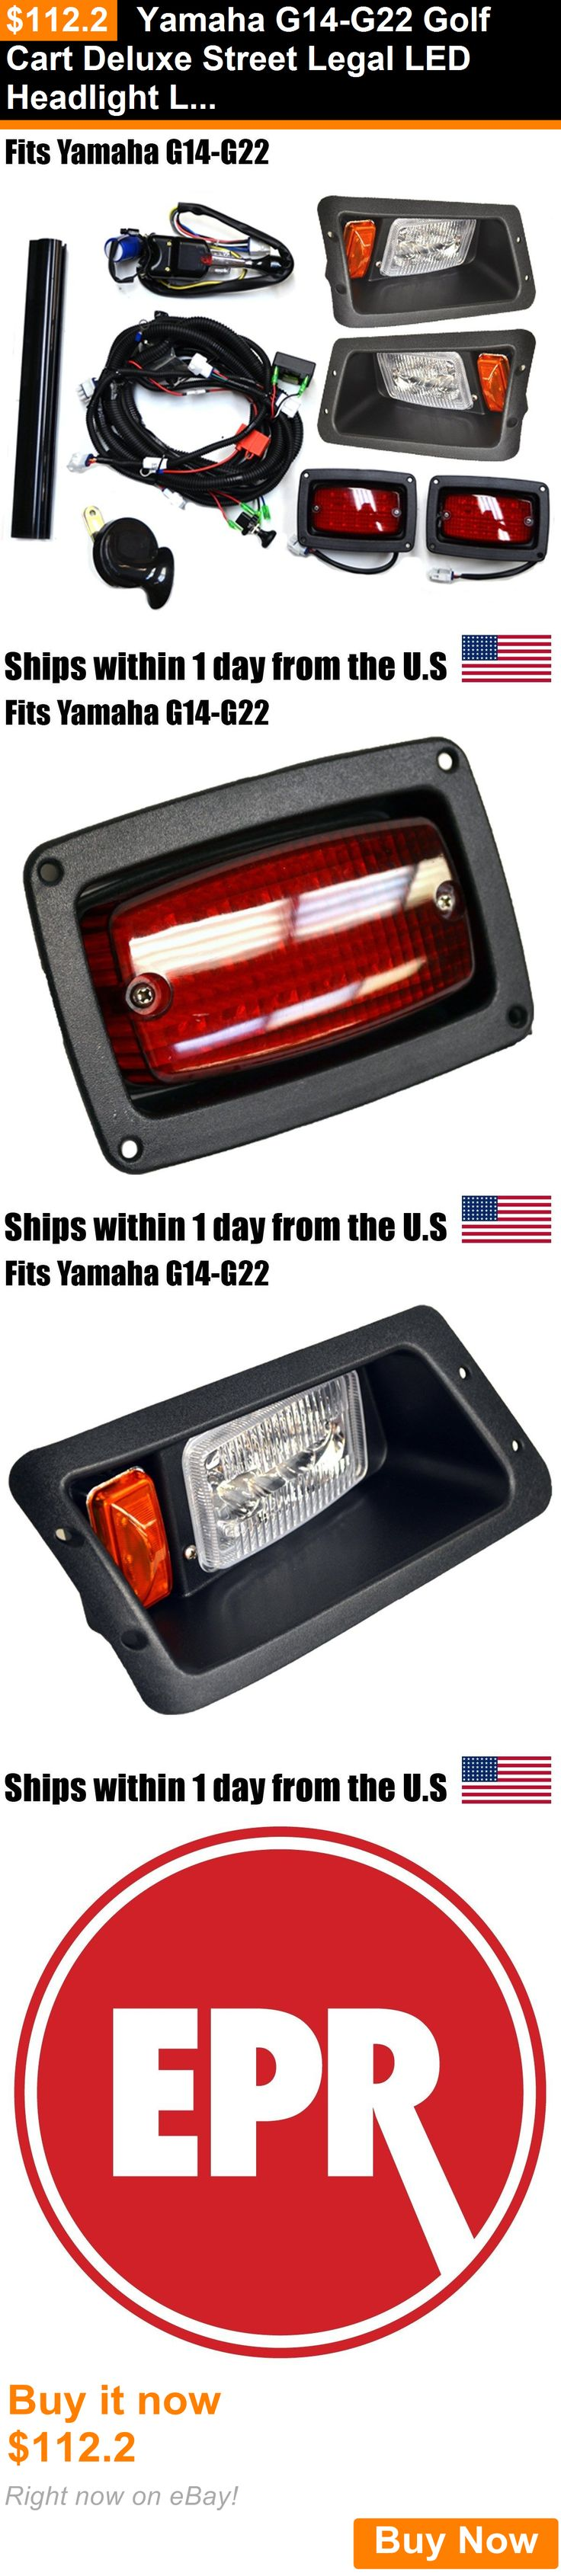 Push-Pull Golf Cart Parts 181154: Yamaha G14-G22 Golf Cart Deluxe Street Legal Led Headlight Led Tail Light Kit BUY IT NOW ONLY: $112.2